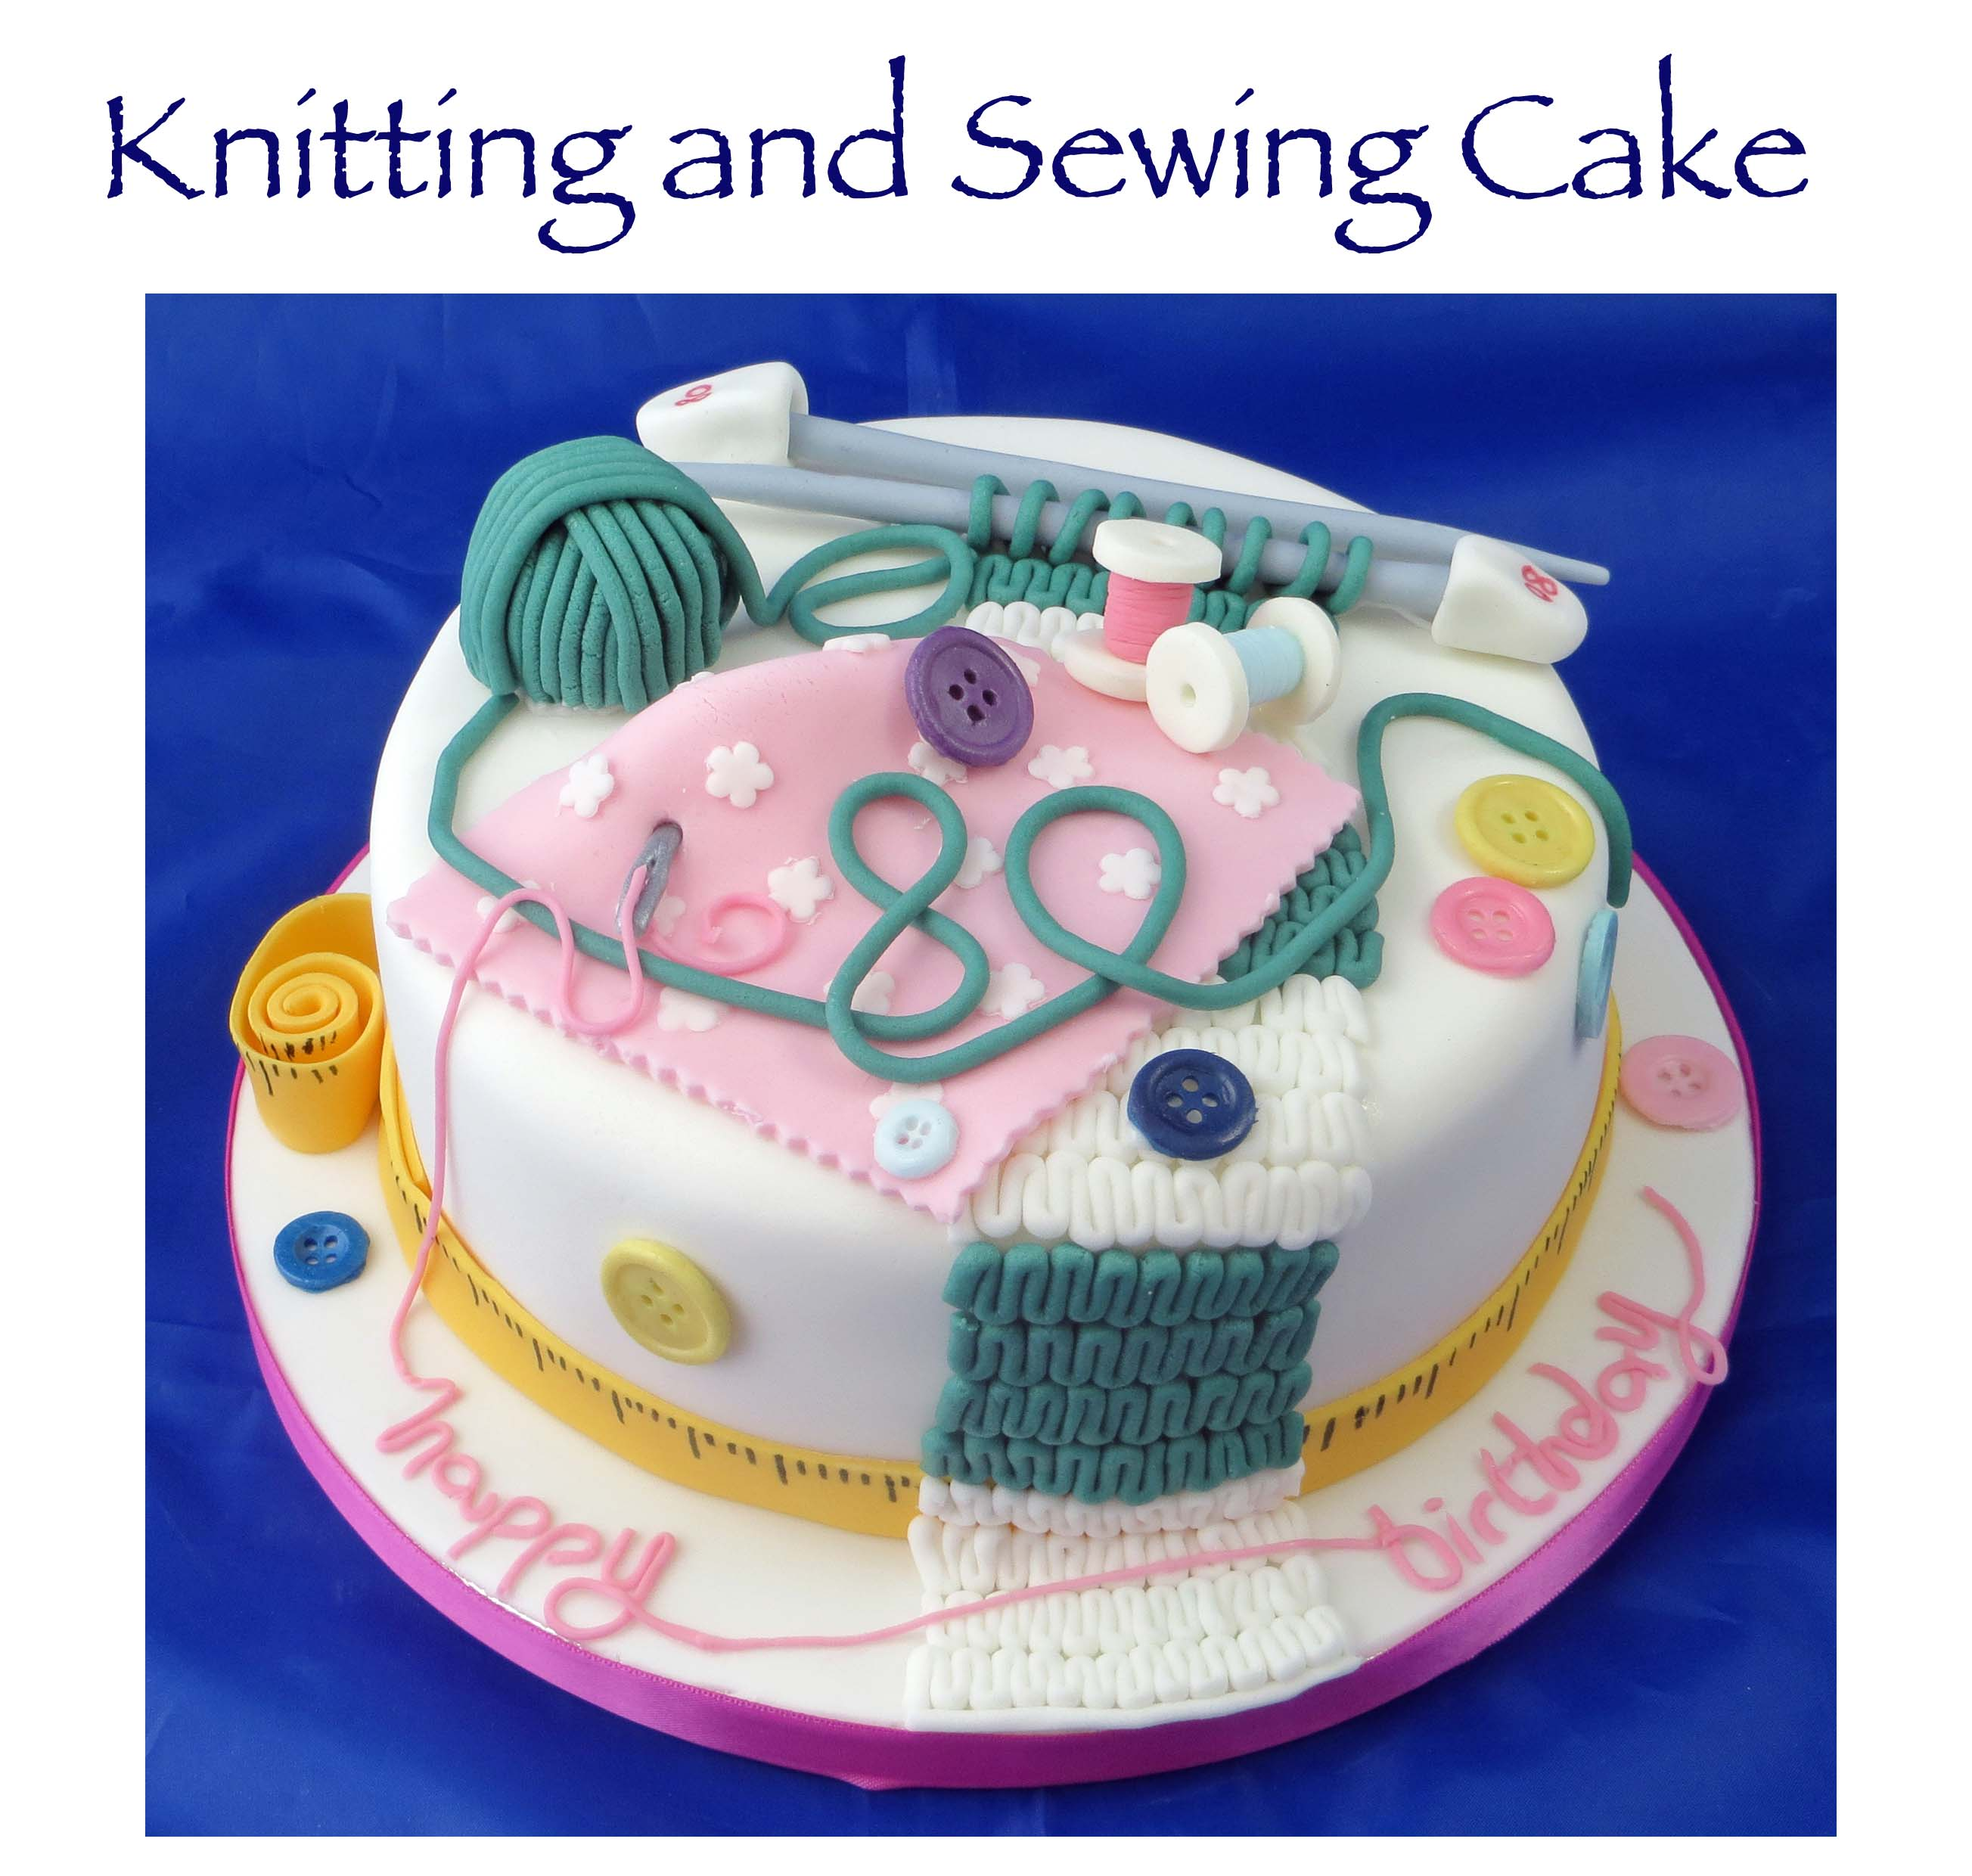 Knitting and Sewing Cake